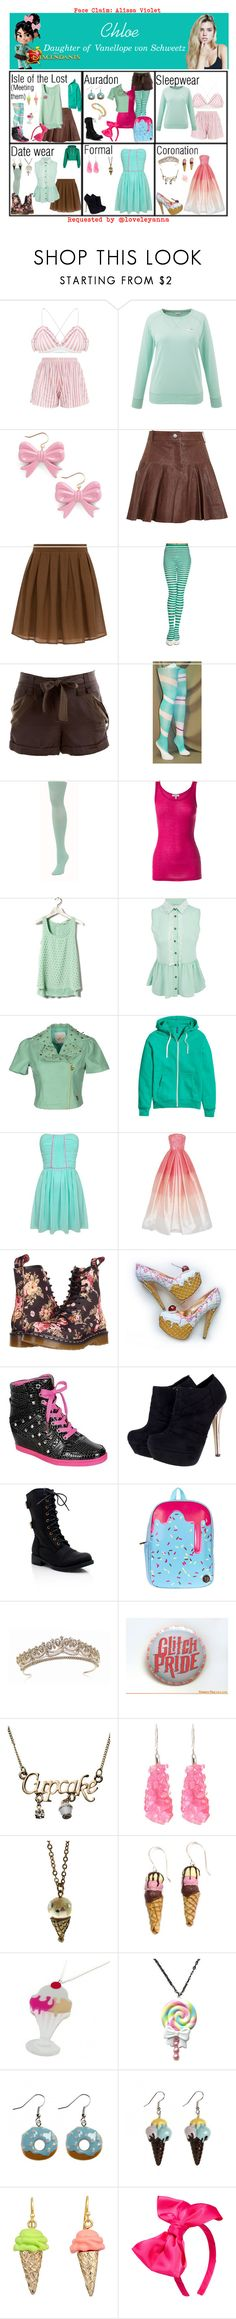 """Chloe. Daughter of Vanellope von Schweetz. Requested"" by elmoakepoke ❤ liked on Polyvore featuring Swedish Hasbeens, Thakoon Addition, Hallhuber, BCBGMAXAZRIA, We Love Colors, Clu, Pull&Bear, Maison Espin, H&M and Naeem Khan"